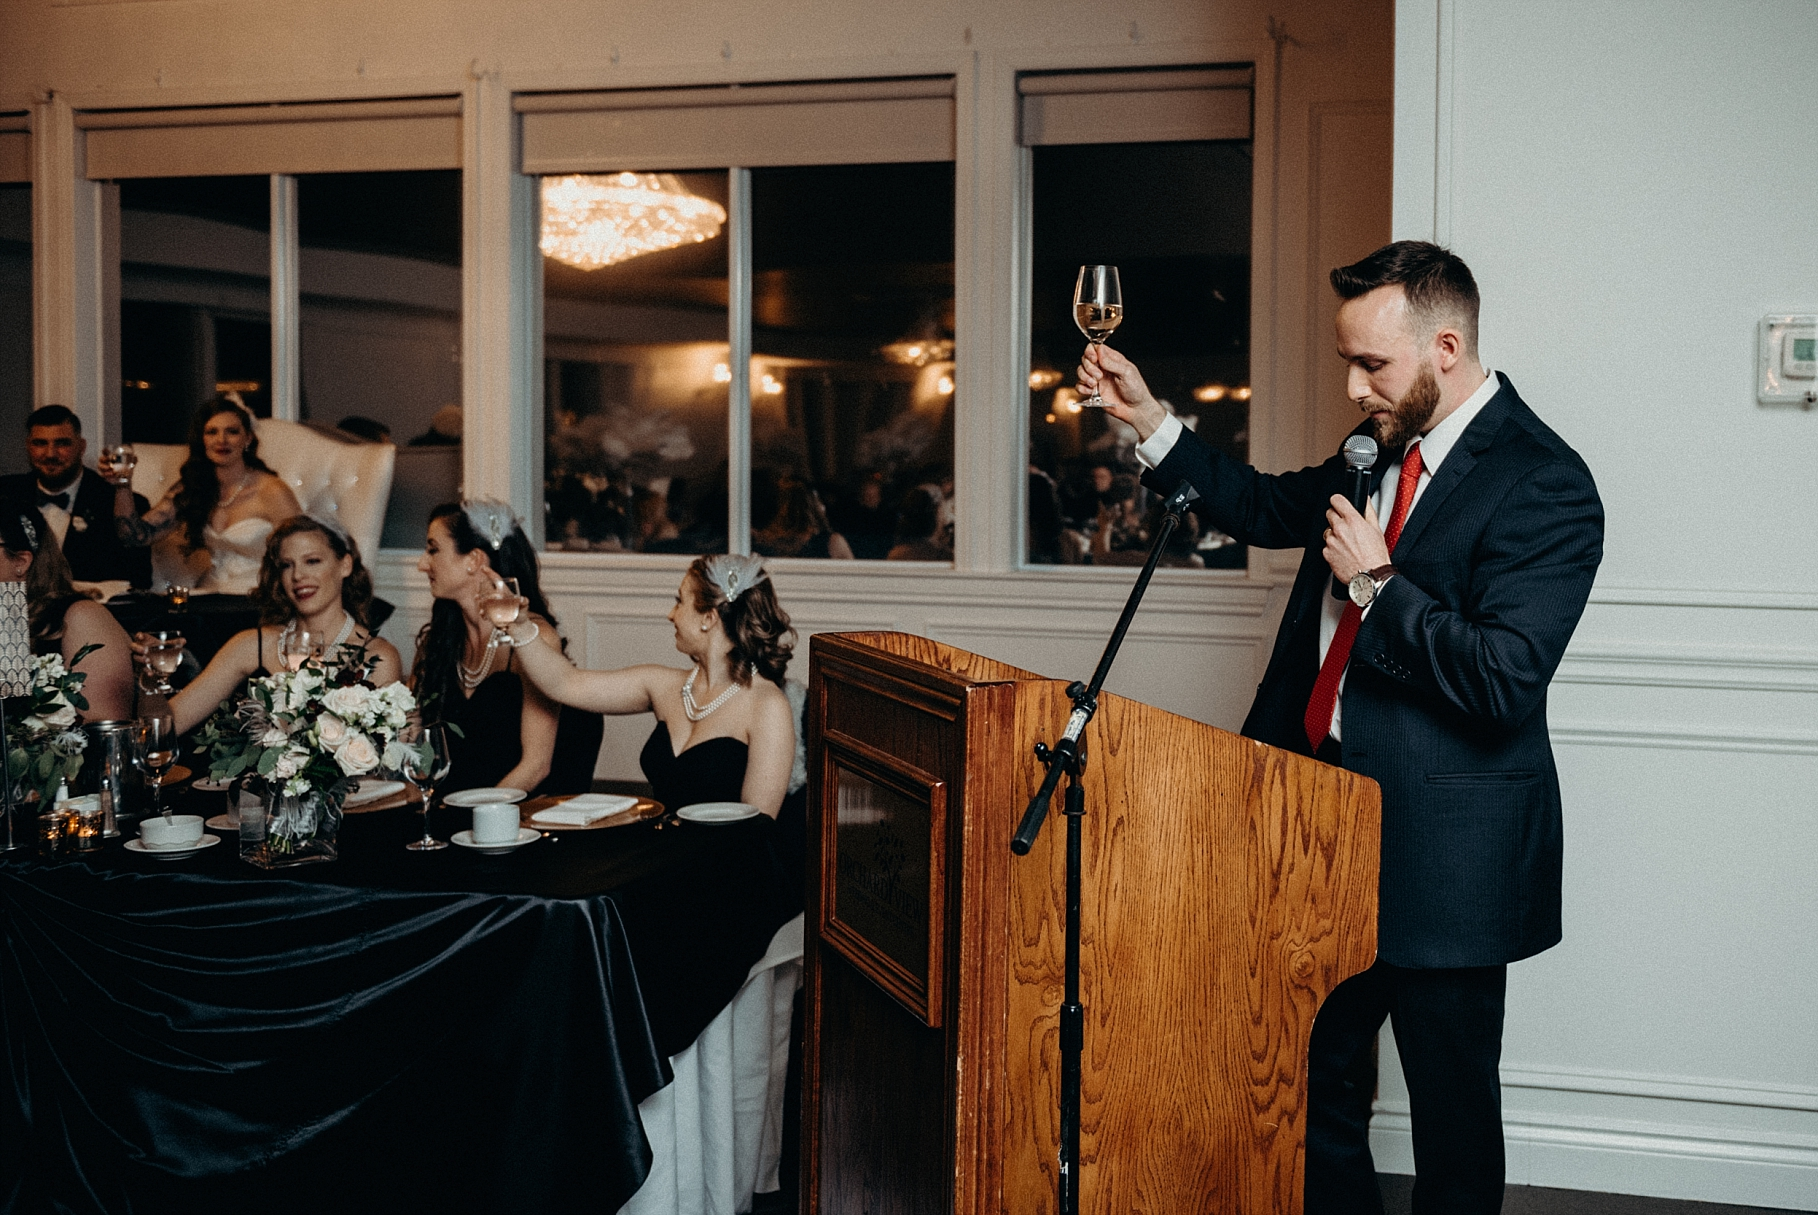 Orchard View Wedding by Mocha Tree Studios Ottawa Wedding and Engagement Photographer and Videographer Dark Moody Intimate Authentic Modern Romantic Cinematic Best Candid 23